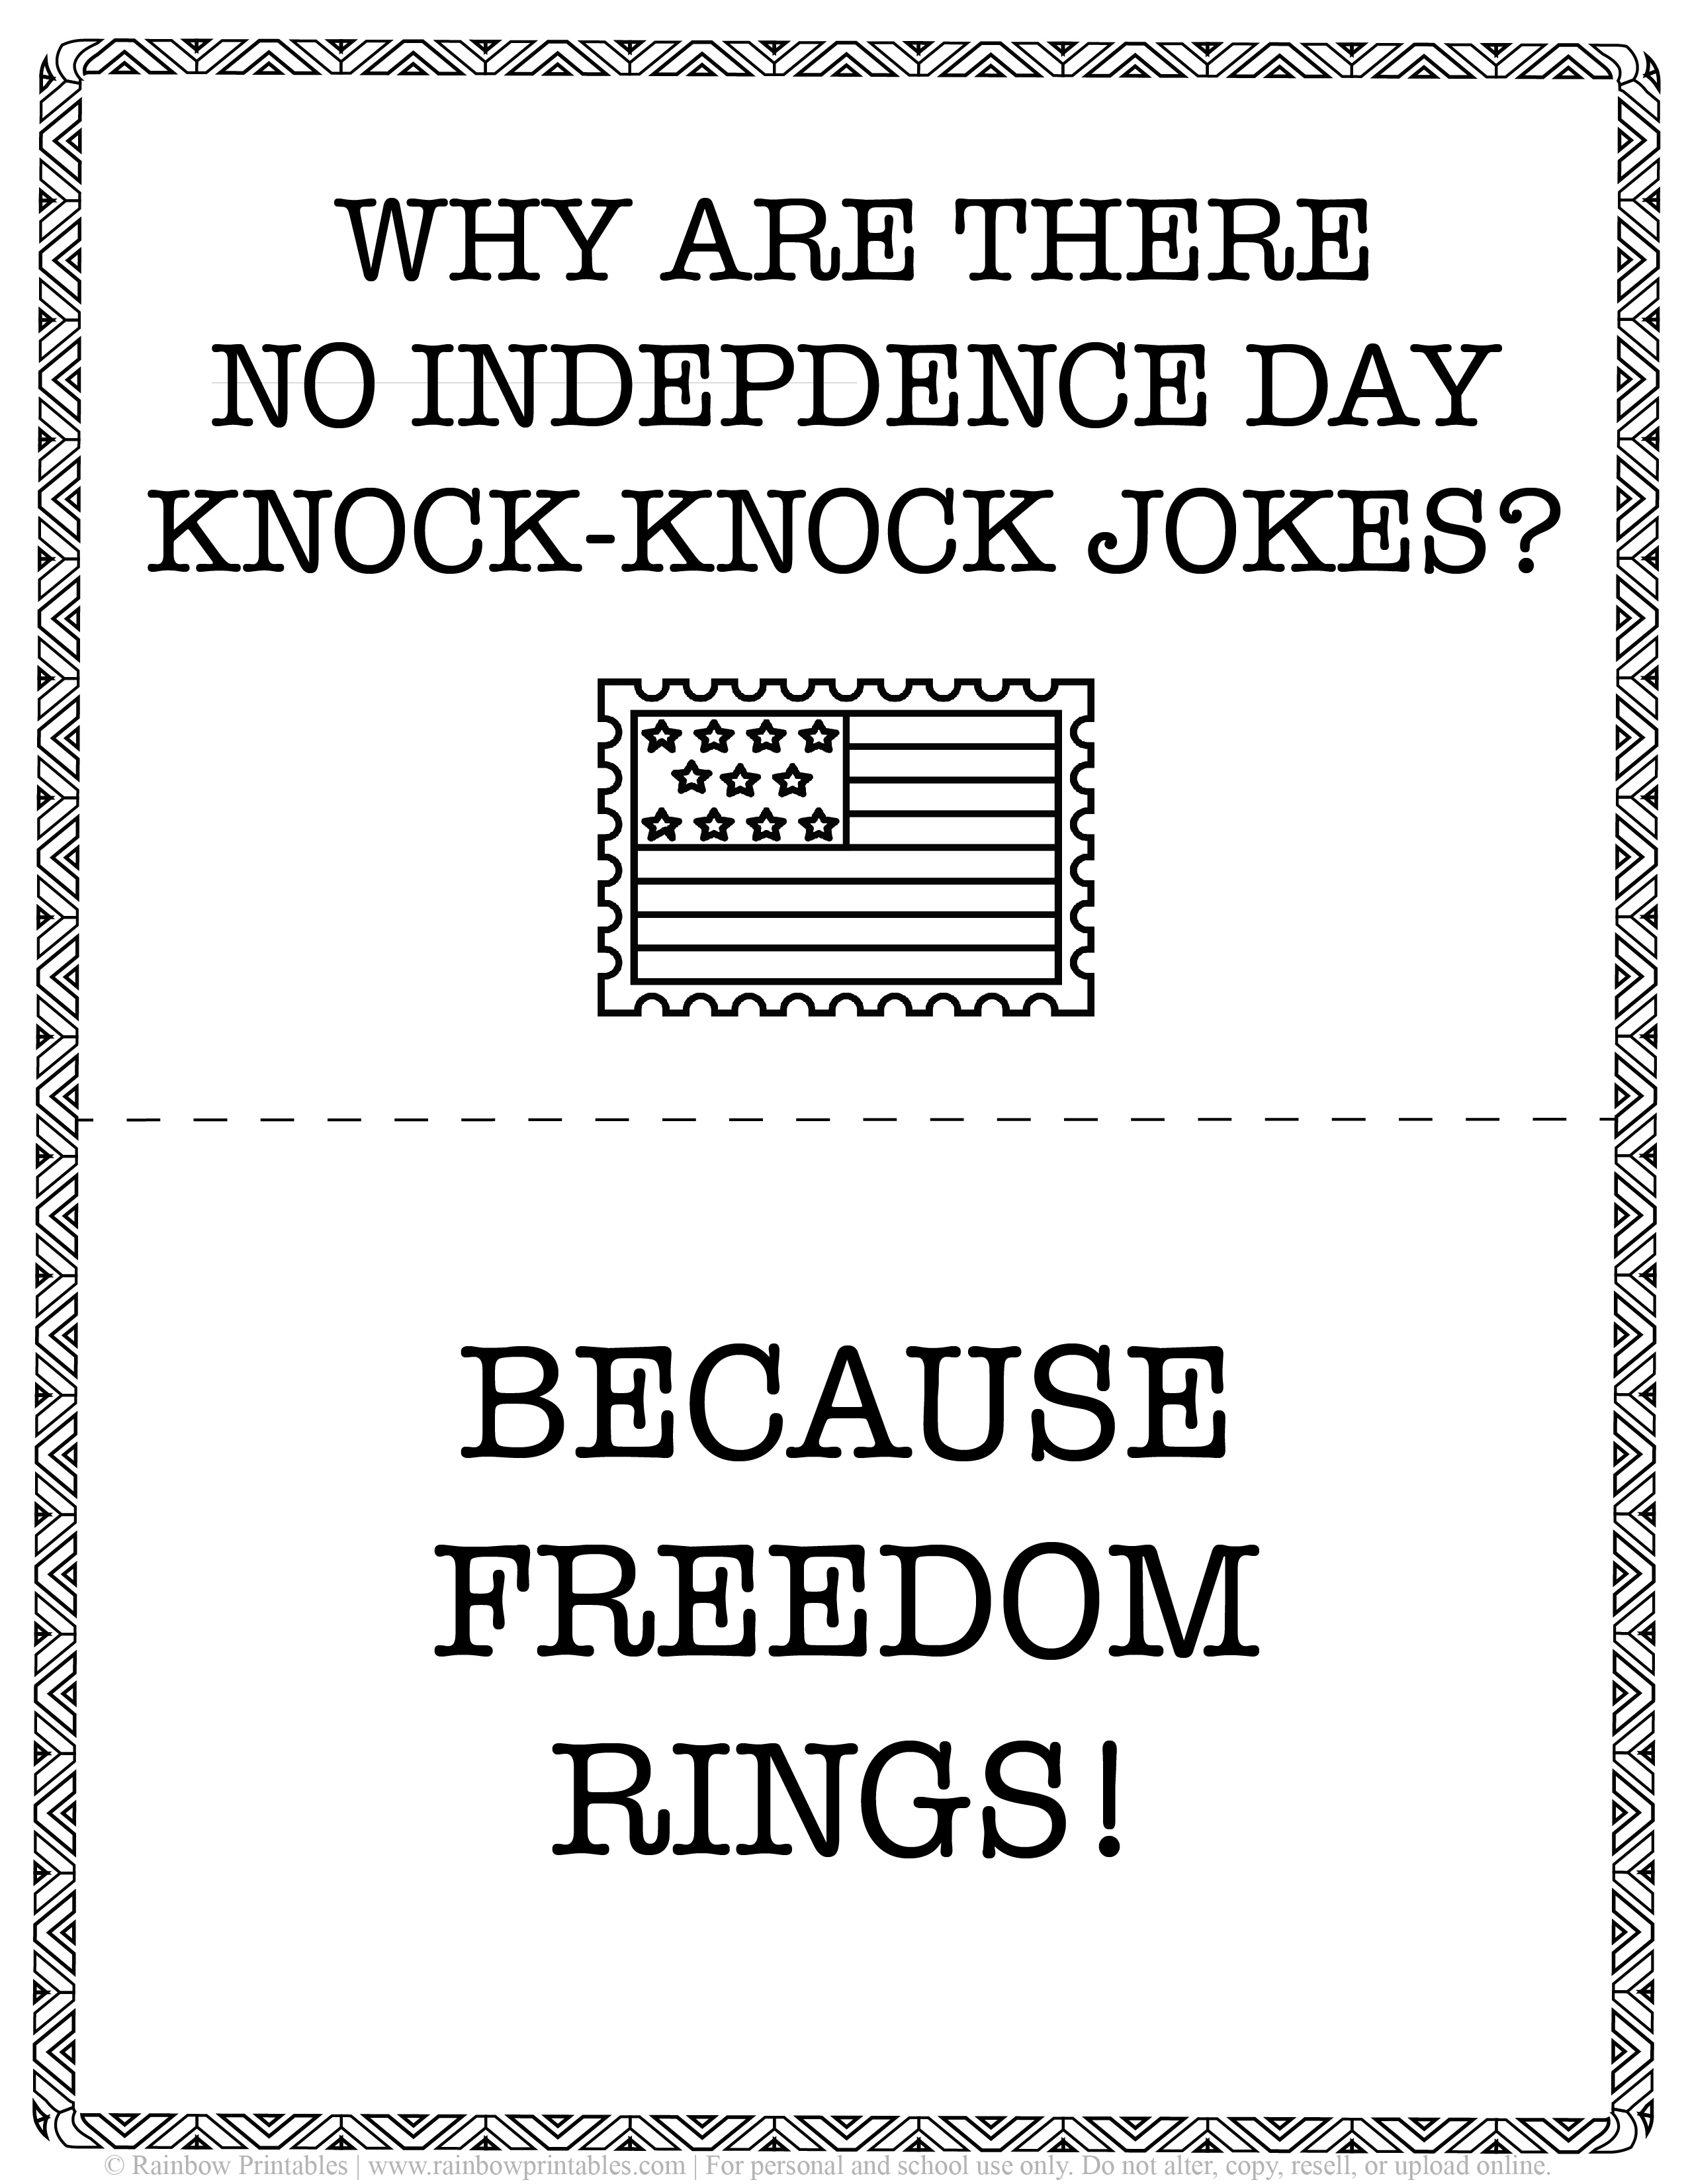 Kids Patriotic July 4th independence Day America Printables Eagle Puns Jokes for Children, Toddlers, Coloring, Activity for Preschool Freedom Rings Jokes